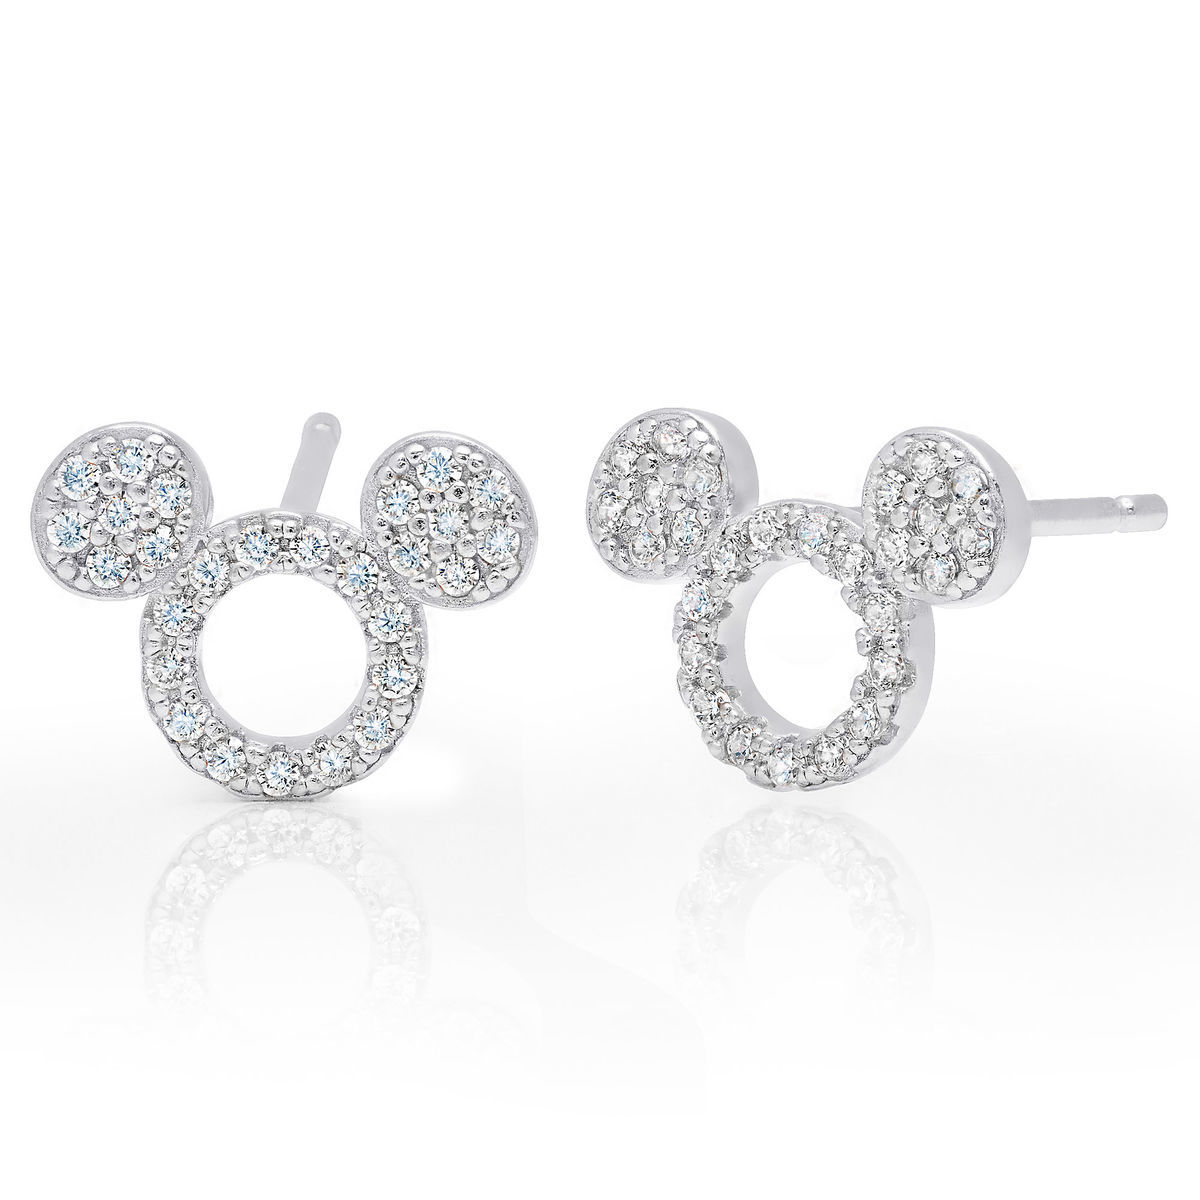 Product Image Of Mickey Mouse Icon Silhouette Stud Earrings By Crislu Platinum 1